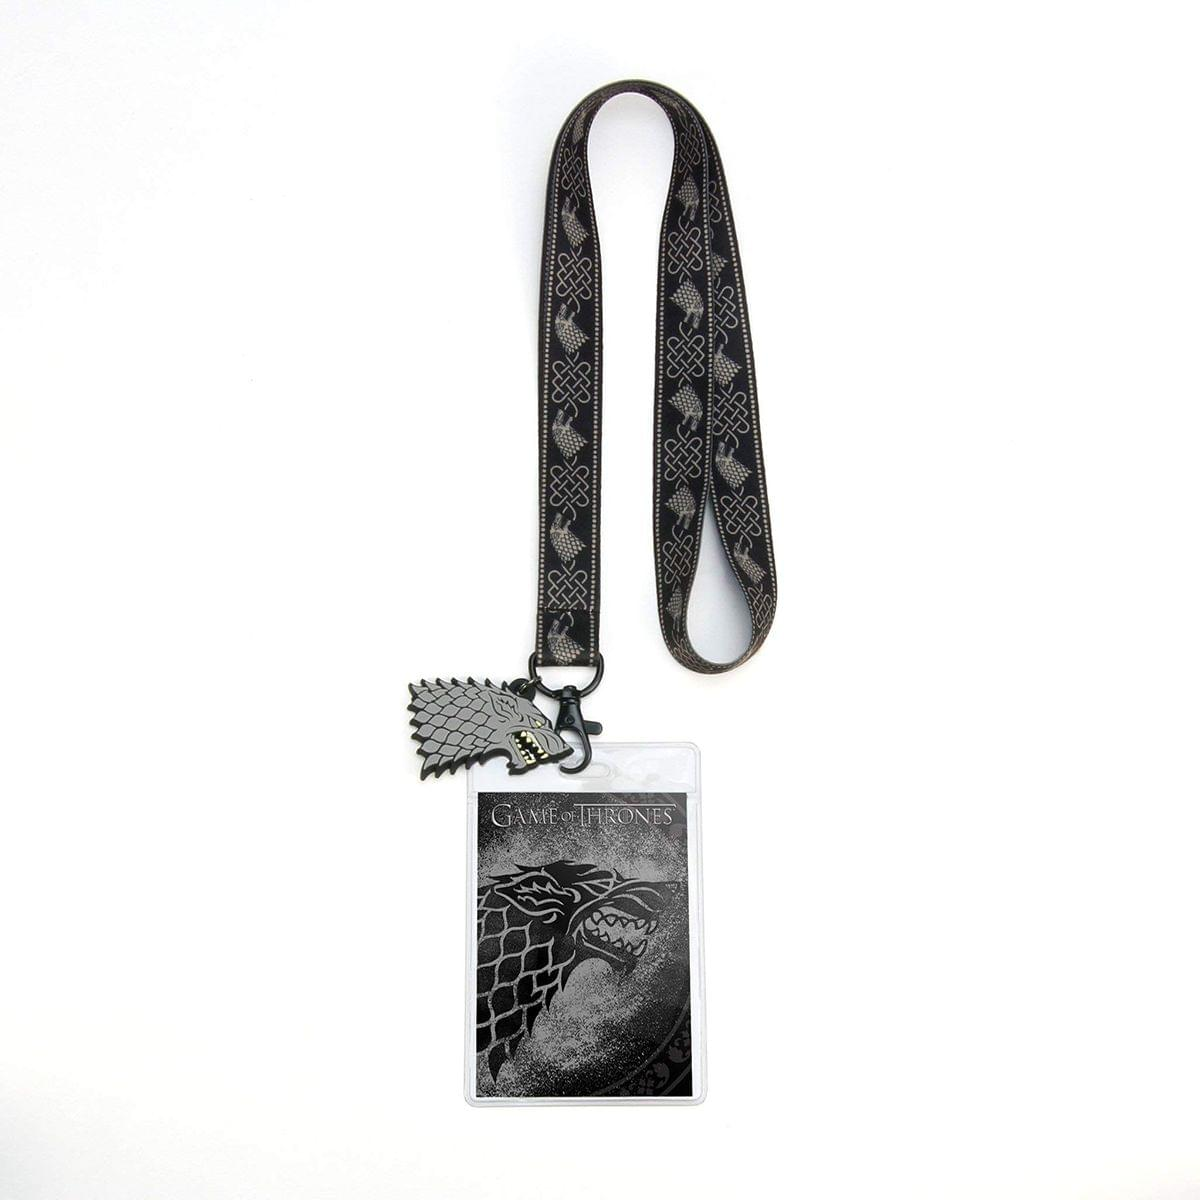 Game of Thrones House Stark Lanyard w/ PVC Charm